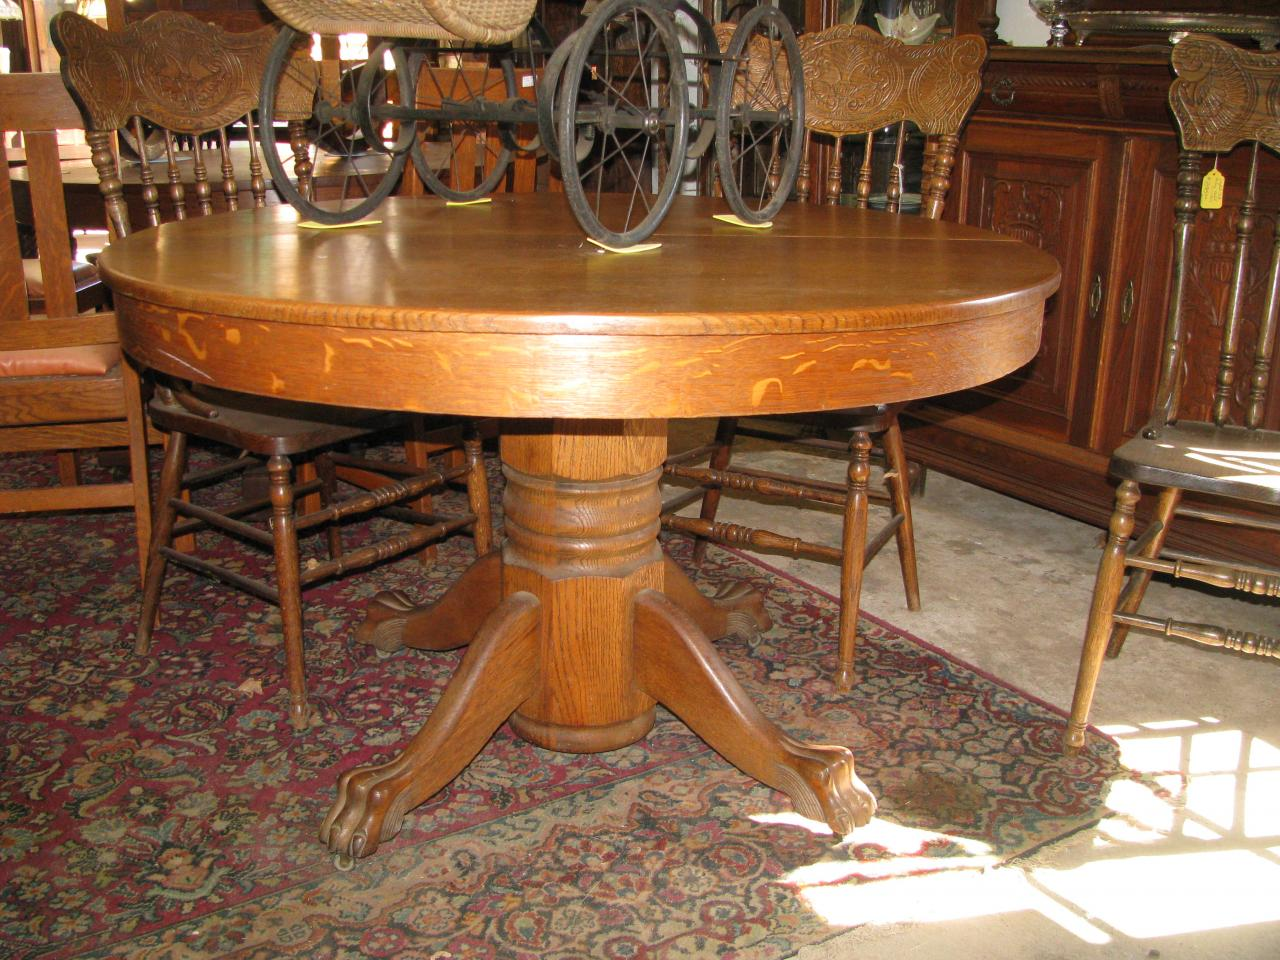 Zs Antiques Restorations ANTIQUE OAK WALNUT AND PINE TABLES - Claw foot dining room table